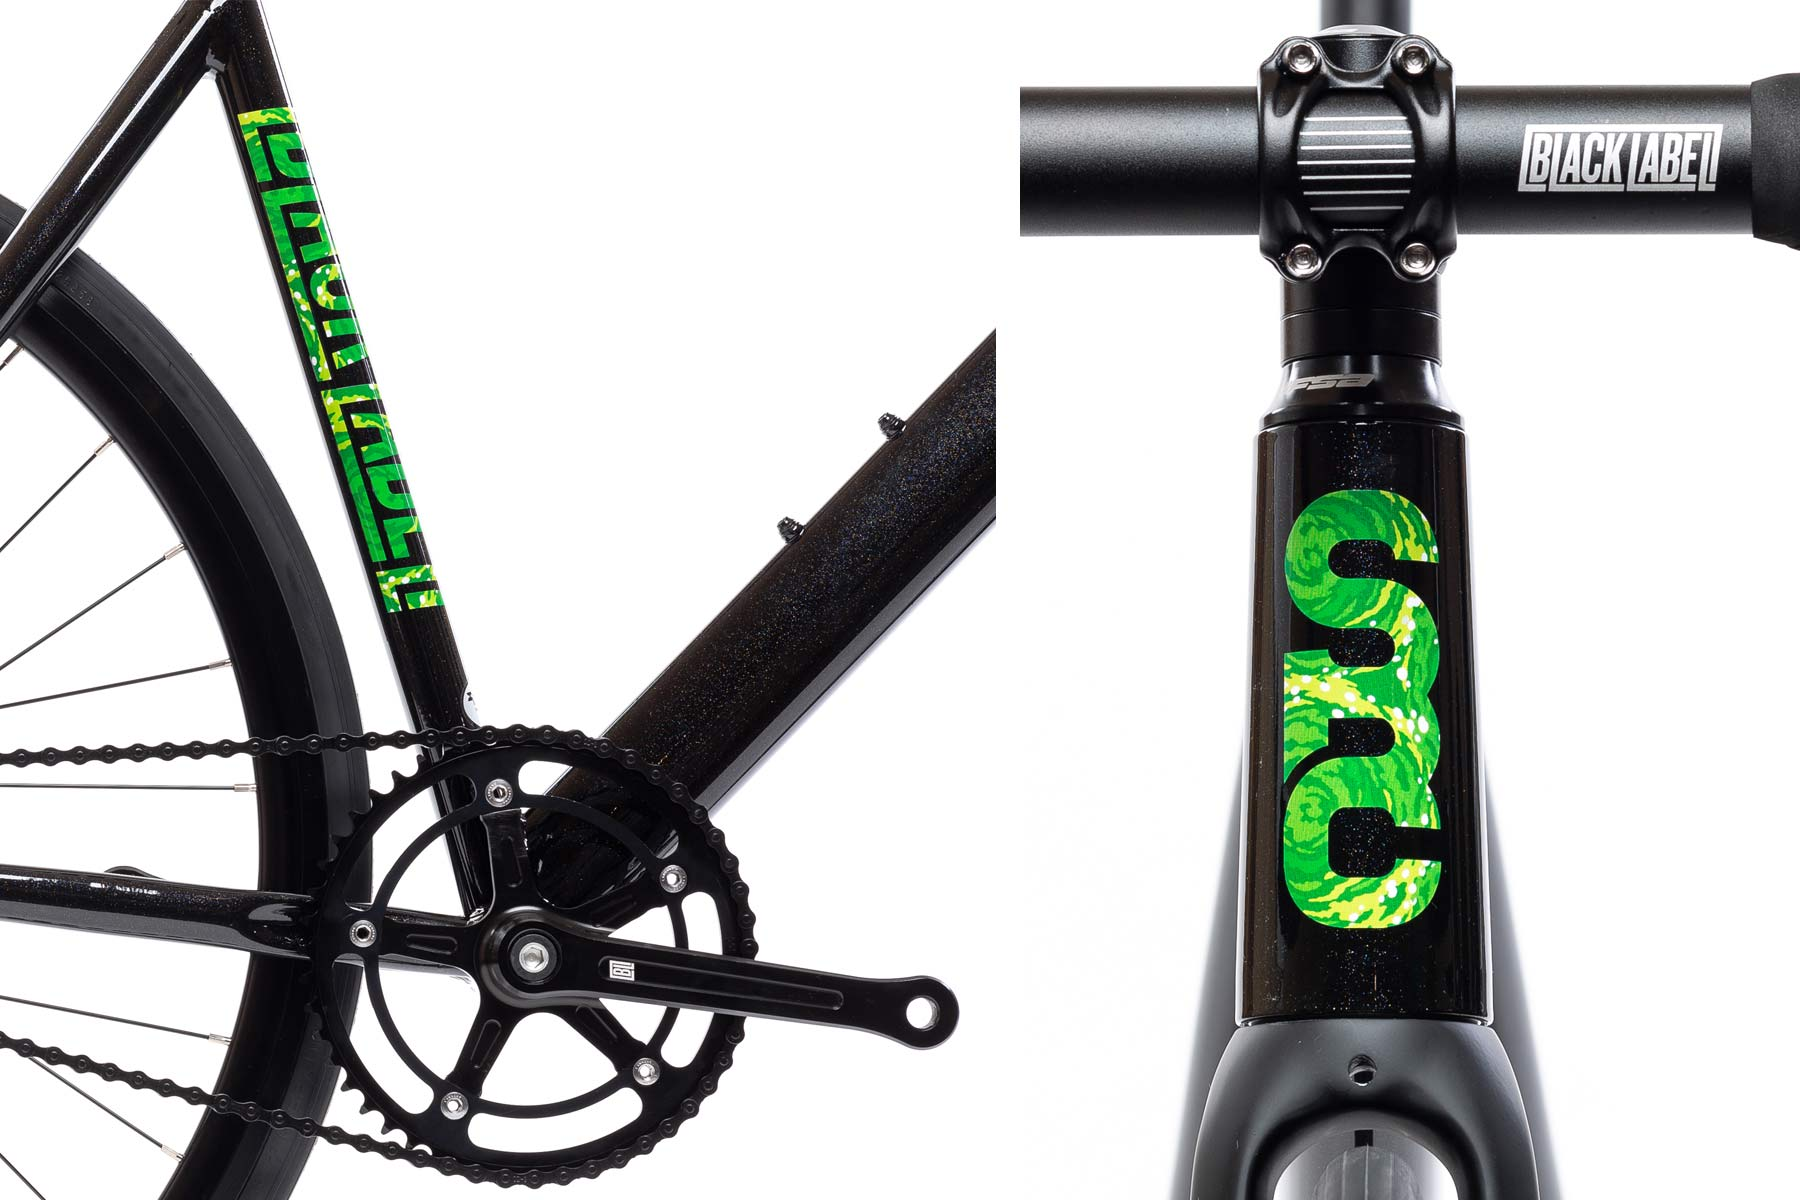 State Bicycle Co x Rick and Morty collection, limited edition interdimensional portal bikes clothing accessories, Black Label details